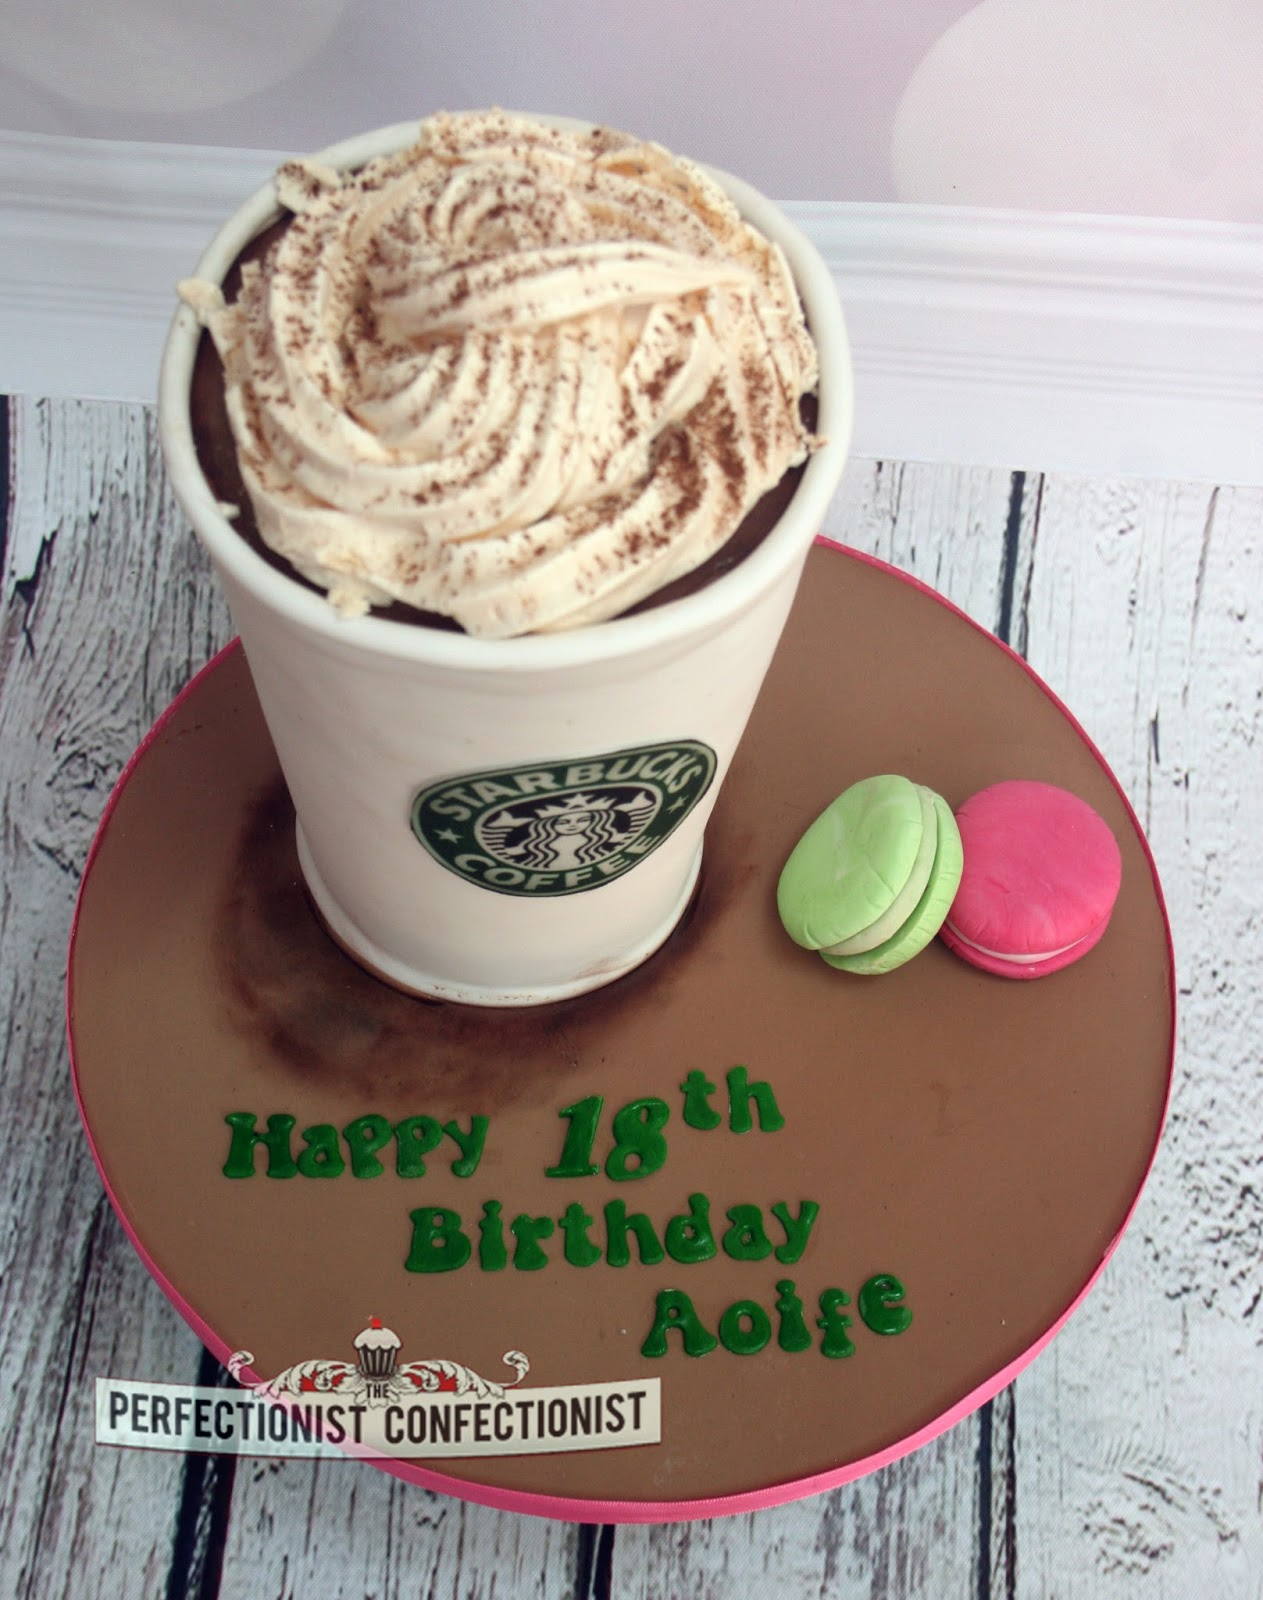 The Perfectionist Confectionist Aoife Starbucks Coffee Cake